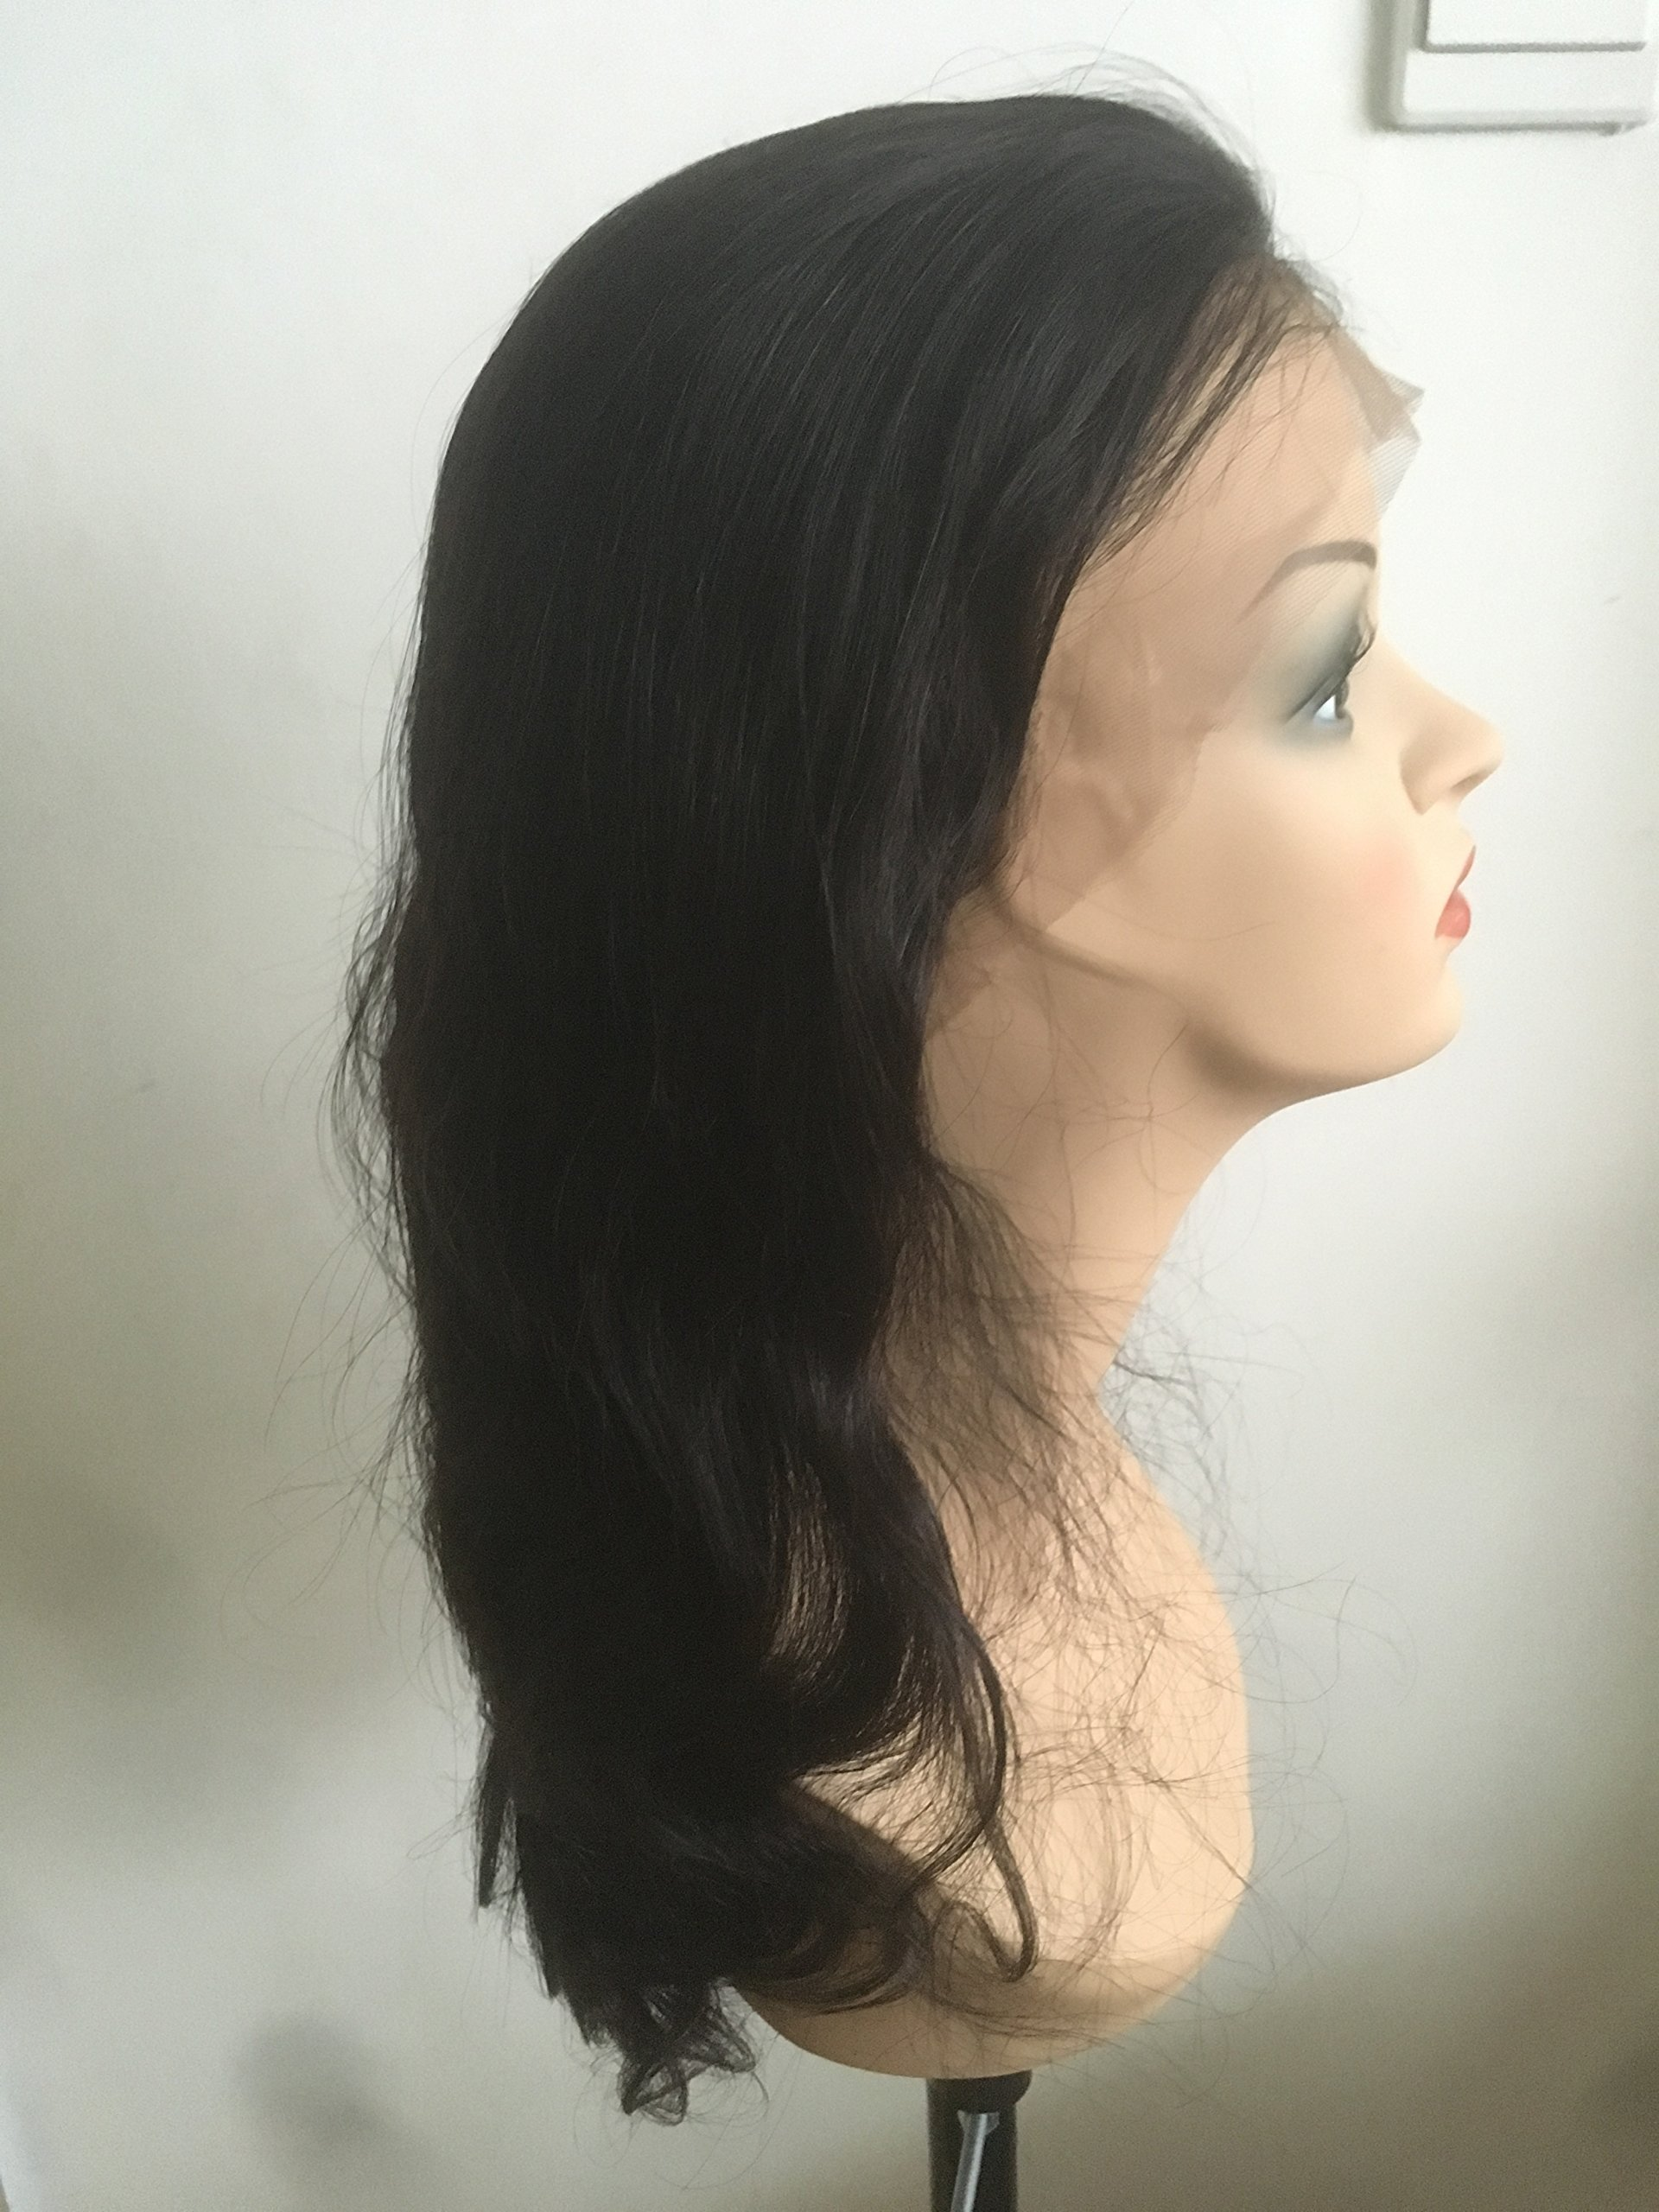 100% top quality indian remi full lace wig 16inch by superiorlacewigs (Image #2)